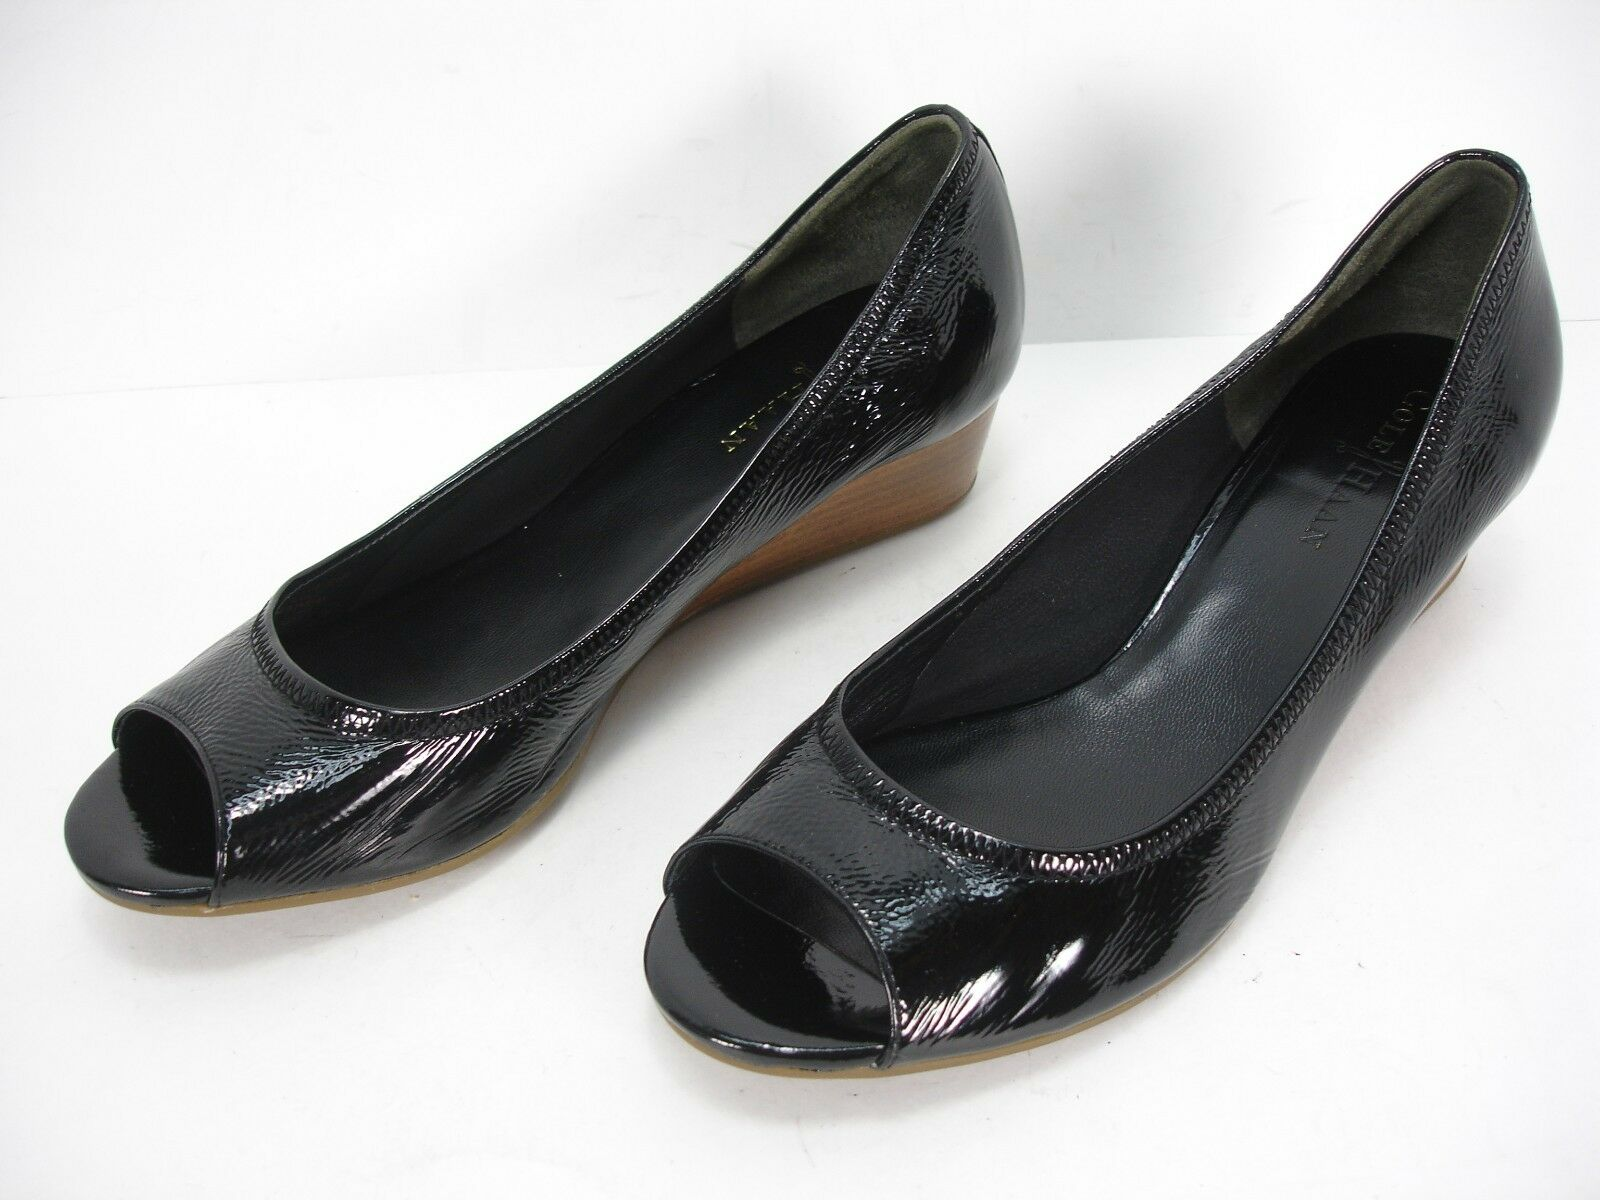 COLE HAAN BLACK PATENT LEATHER WEDGES PEEP TOE Schuhe WOMEN'S 8.5 B MINT